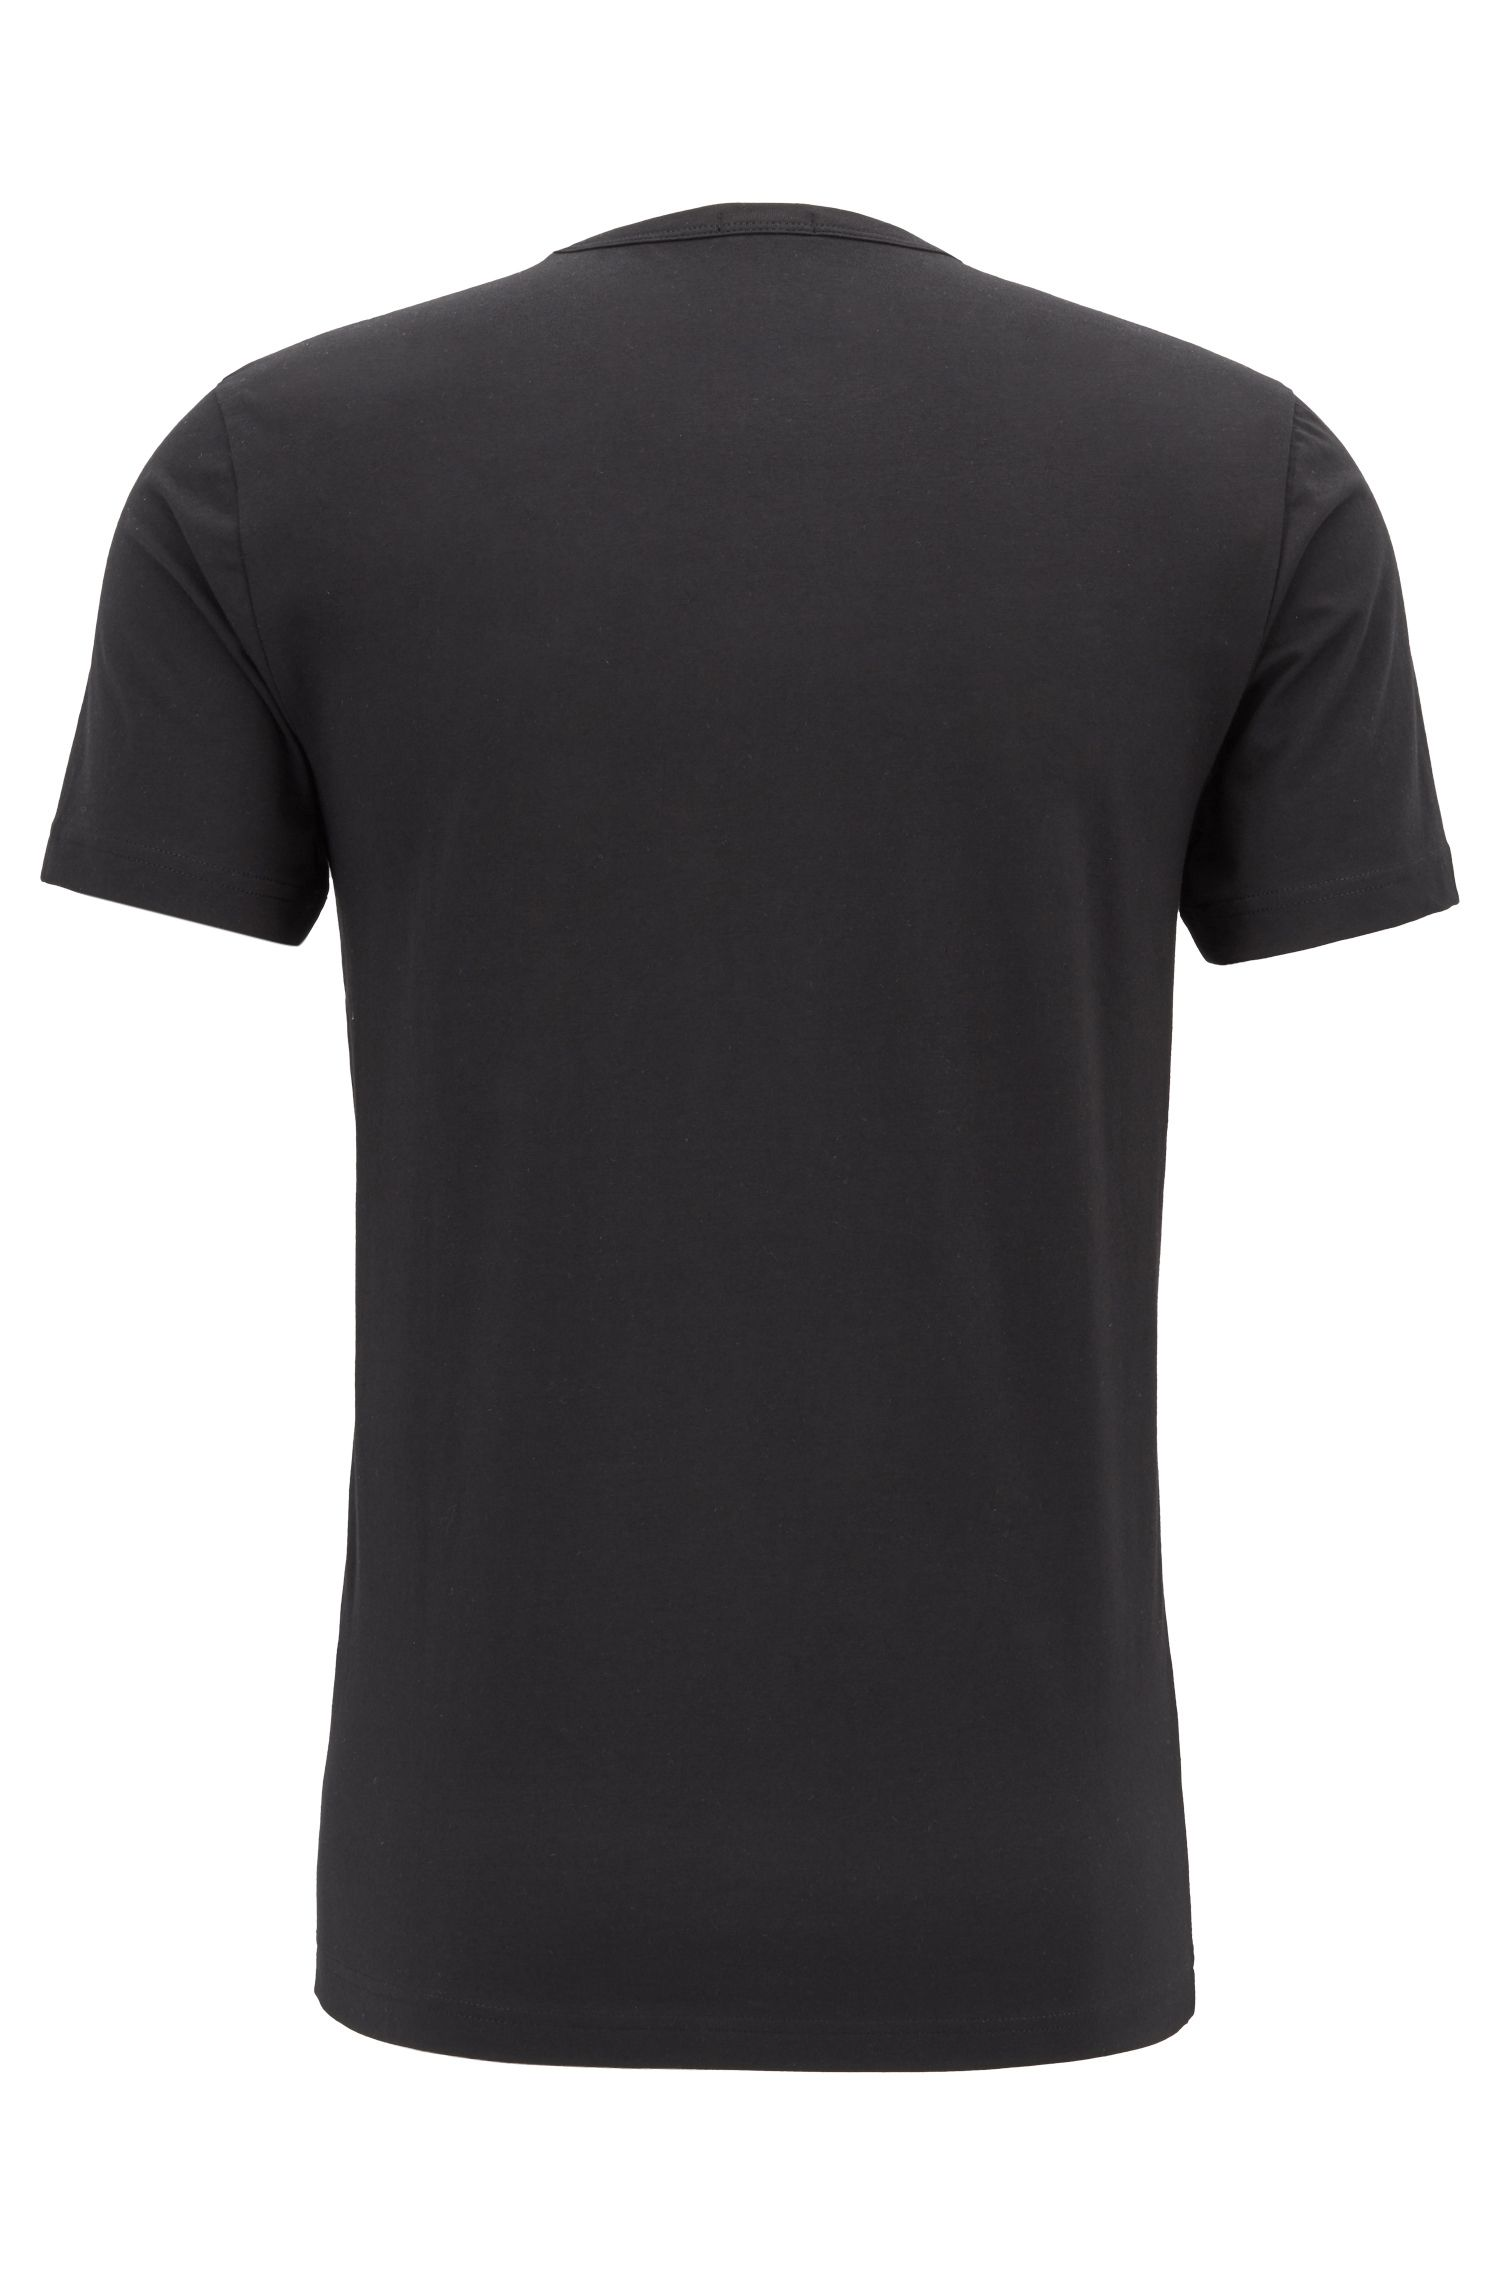 Crew-neck T-shirt in stretch cotton with reflective logo, Black